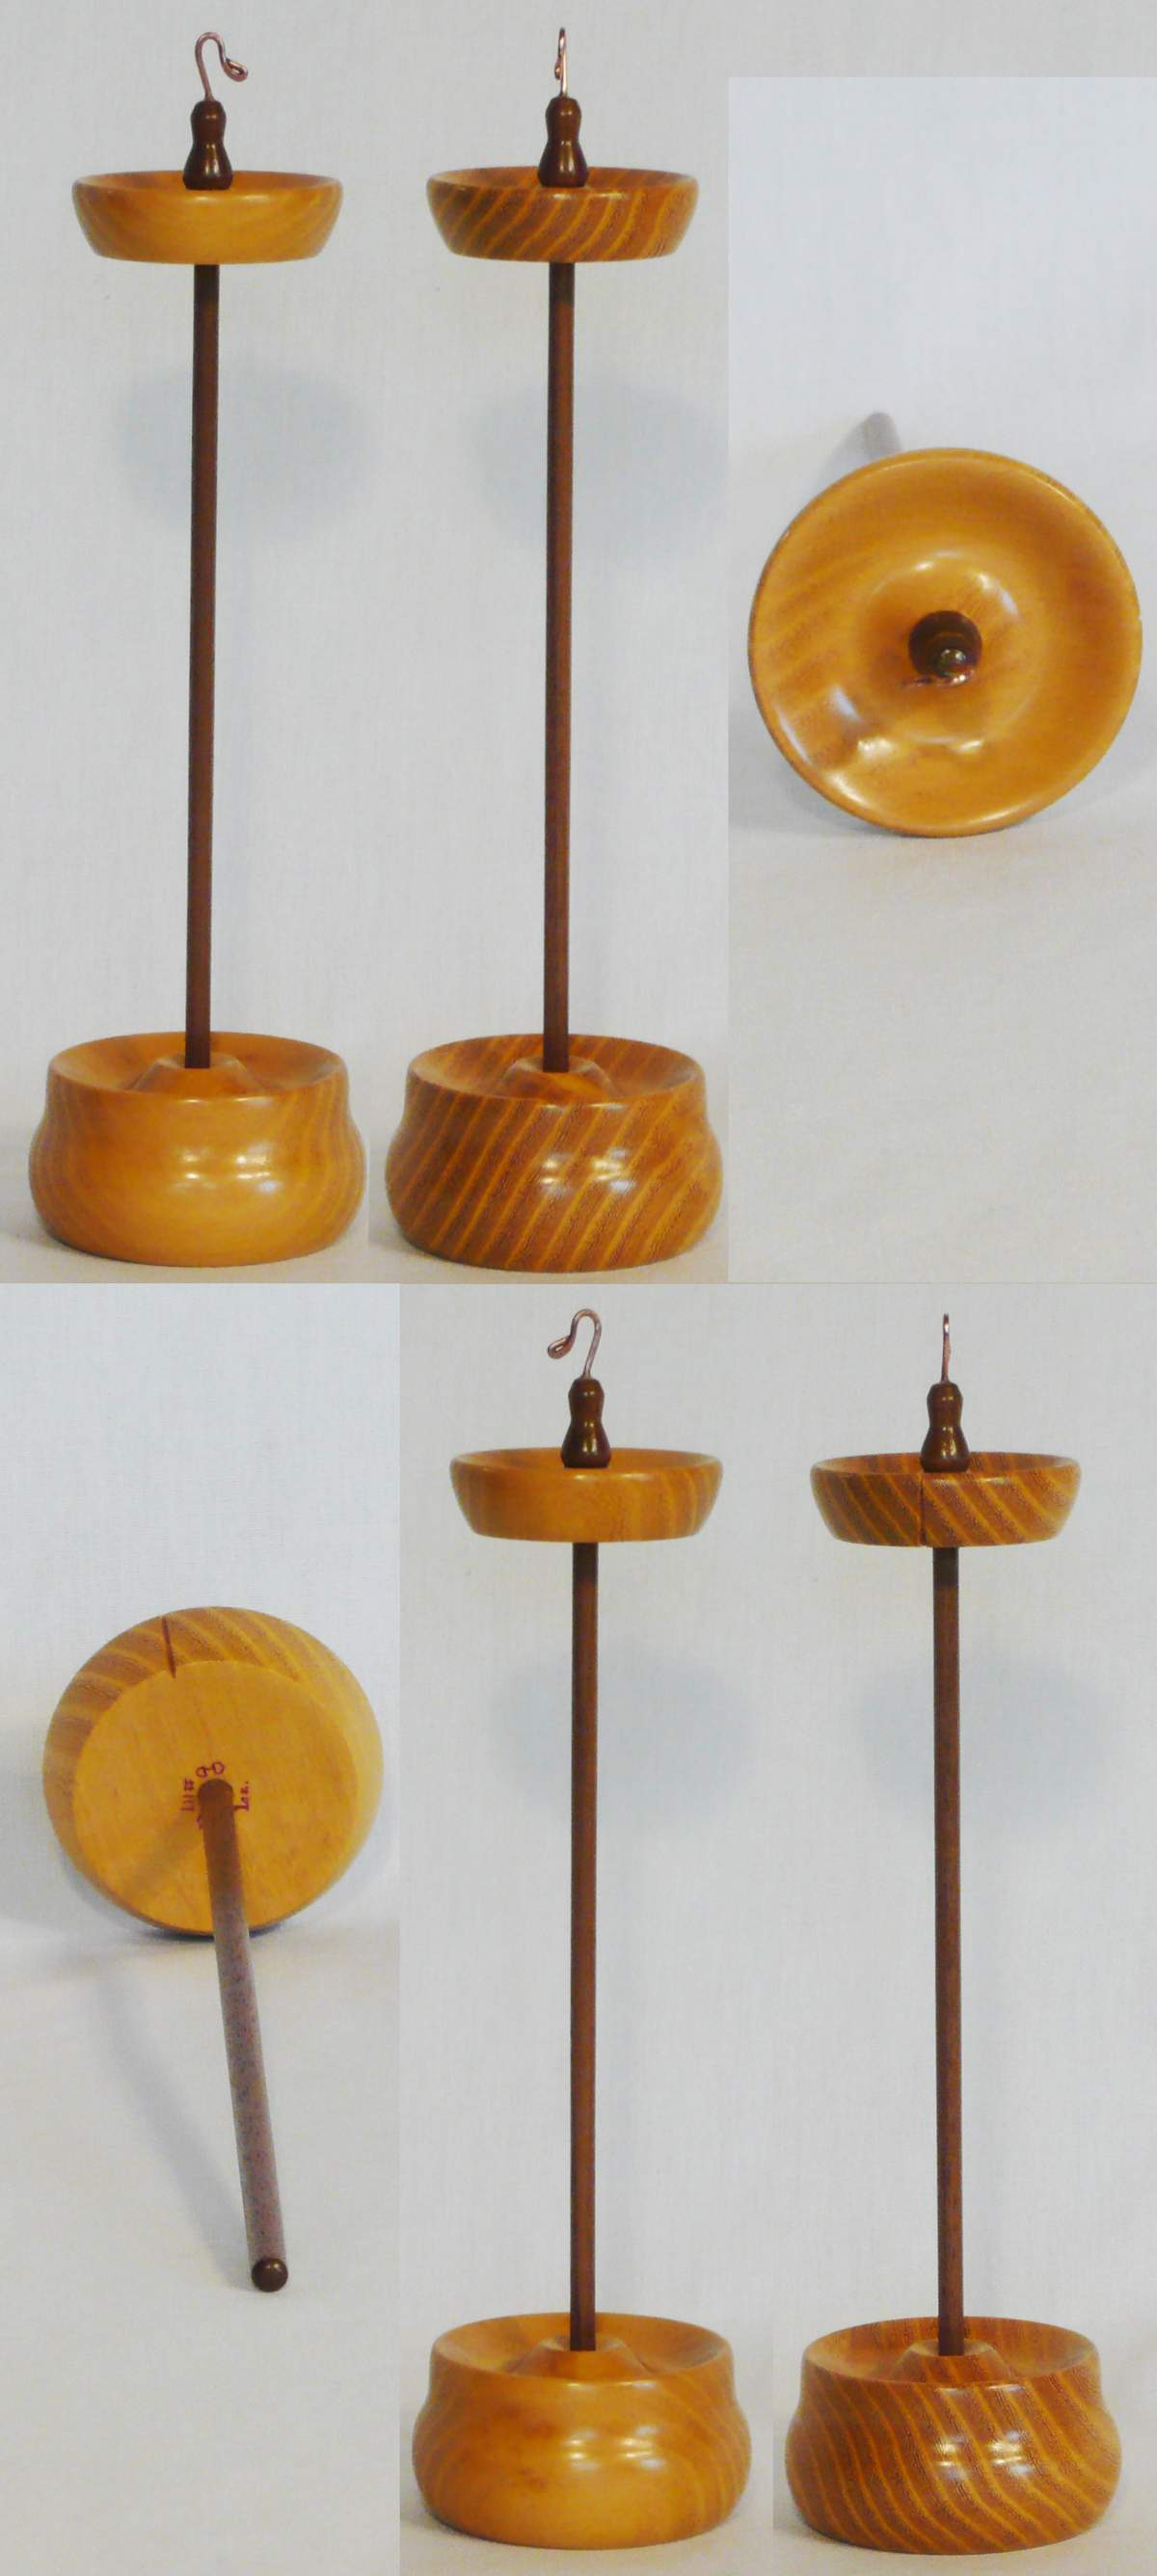 Top whorl drop spindle of Osage Orange wood on a Walnut shaft with a matching display stand. Hand turned by Cynthia D. Haney 1 oz.